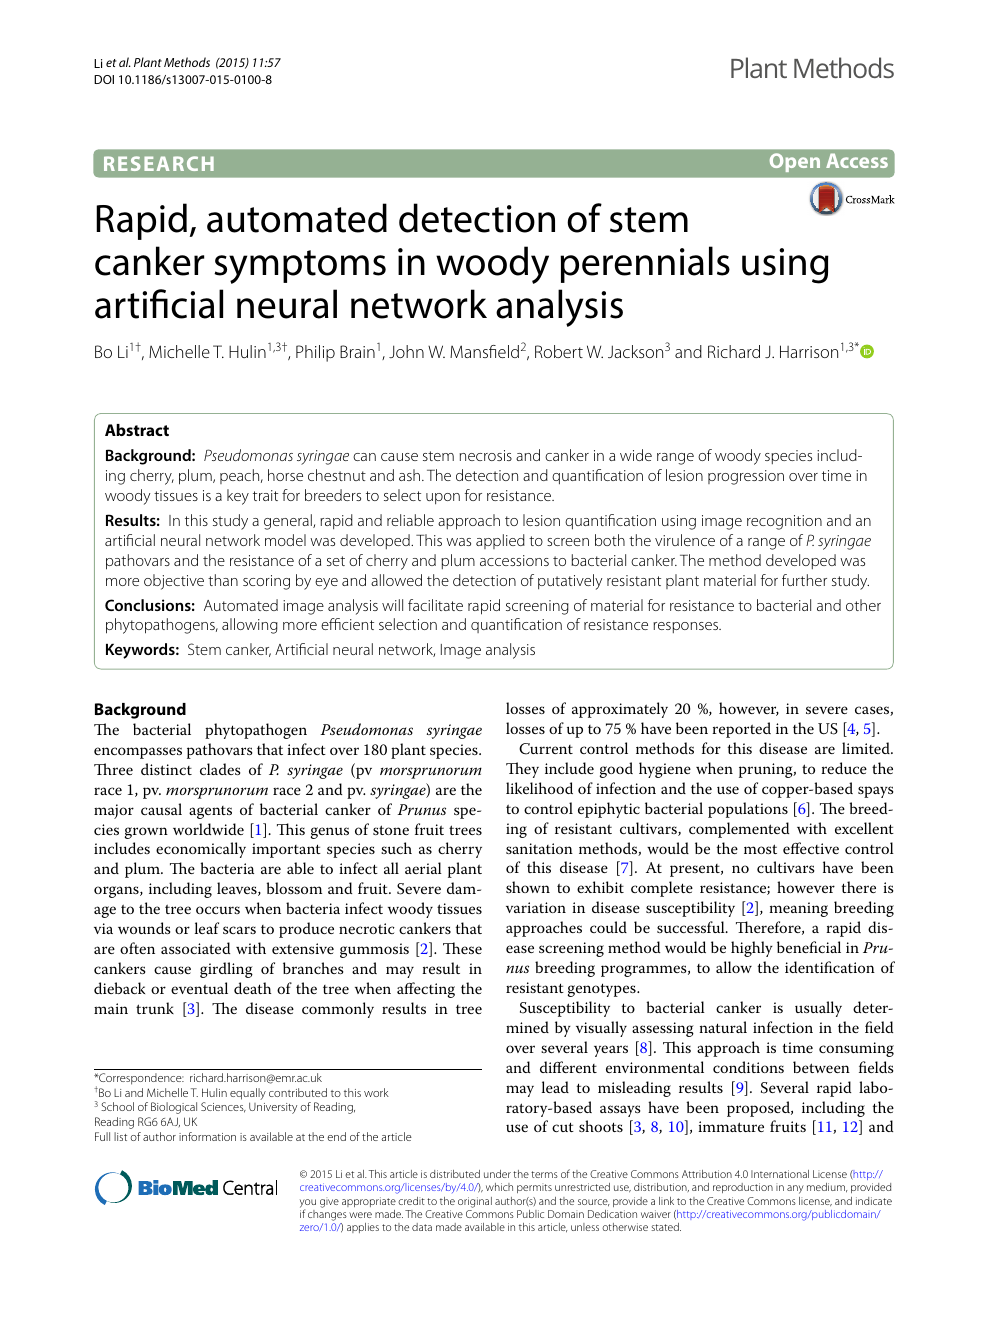 Rapid, automated detection of stem canker symptoms in woody